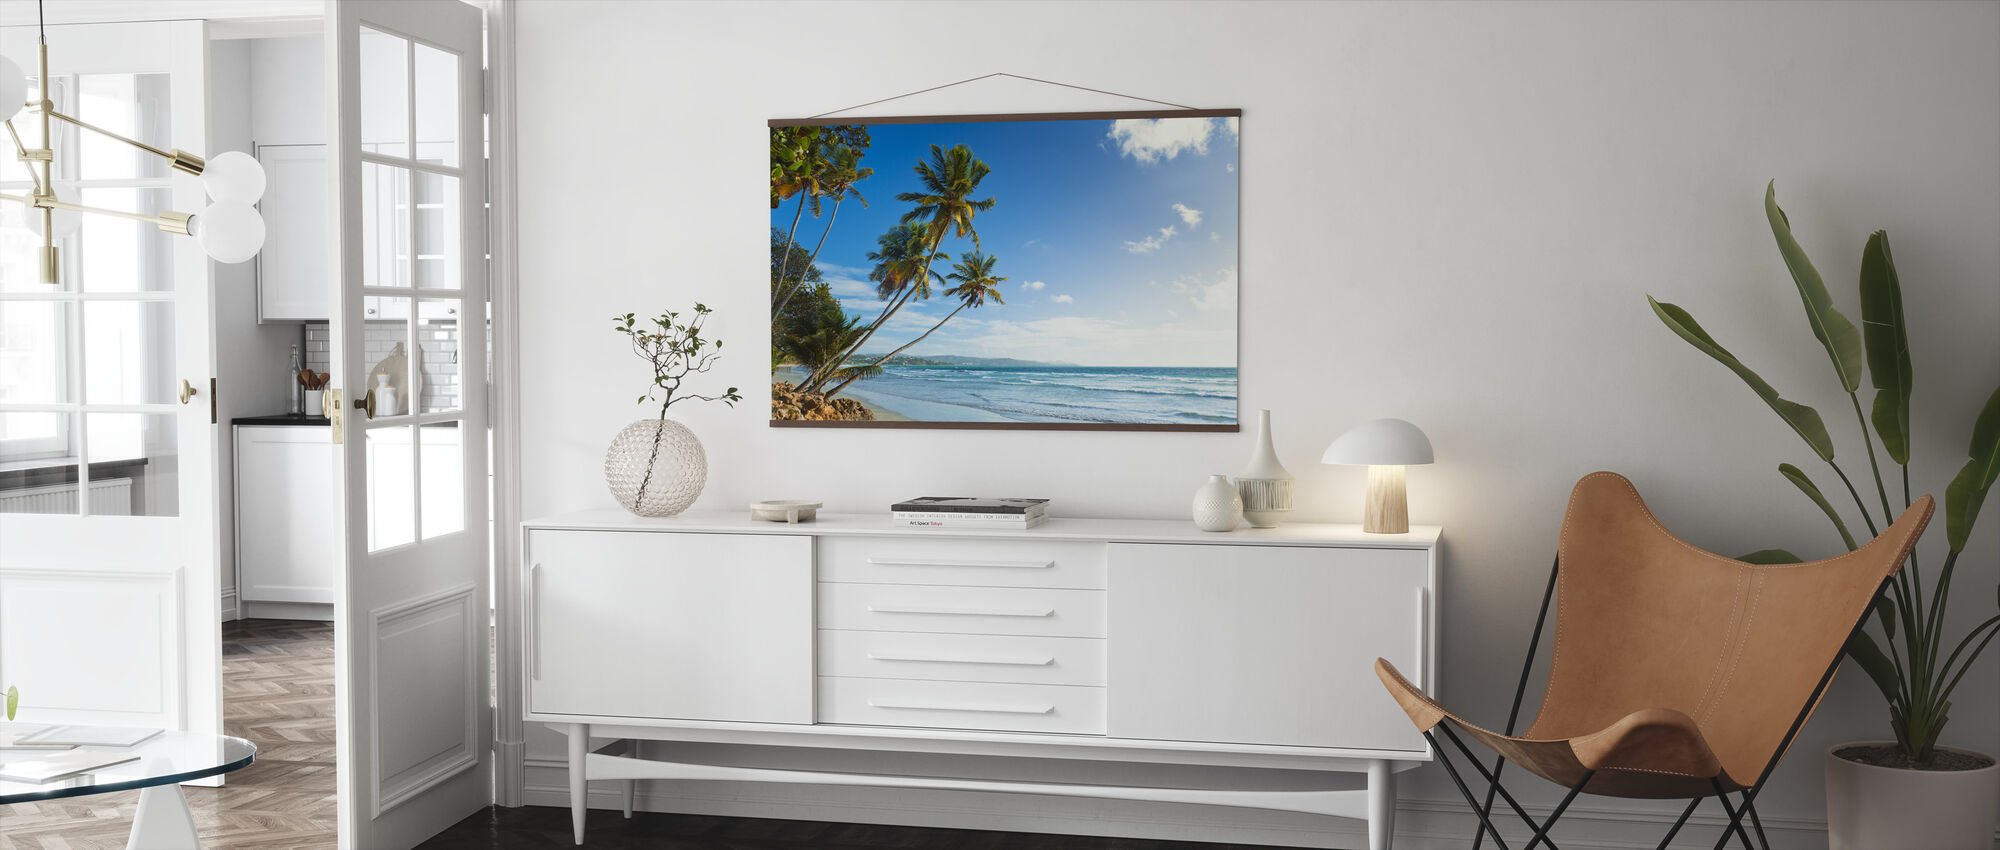 Palms and Beach, Trinidad and Tobago - Poster - Living Room